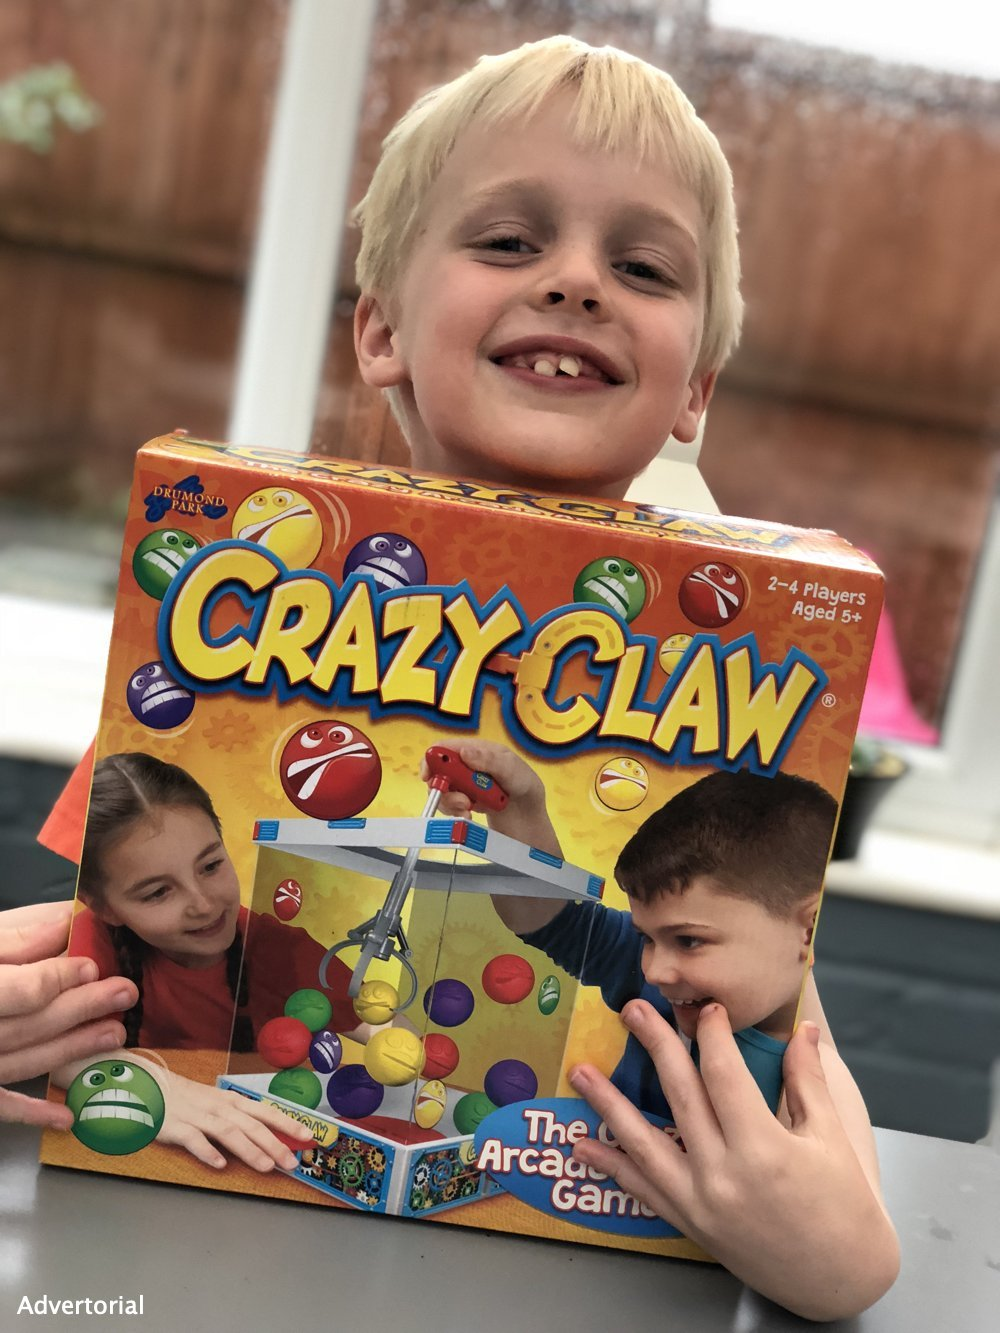 Boy holding the Crazy Claw game in the box